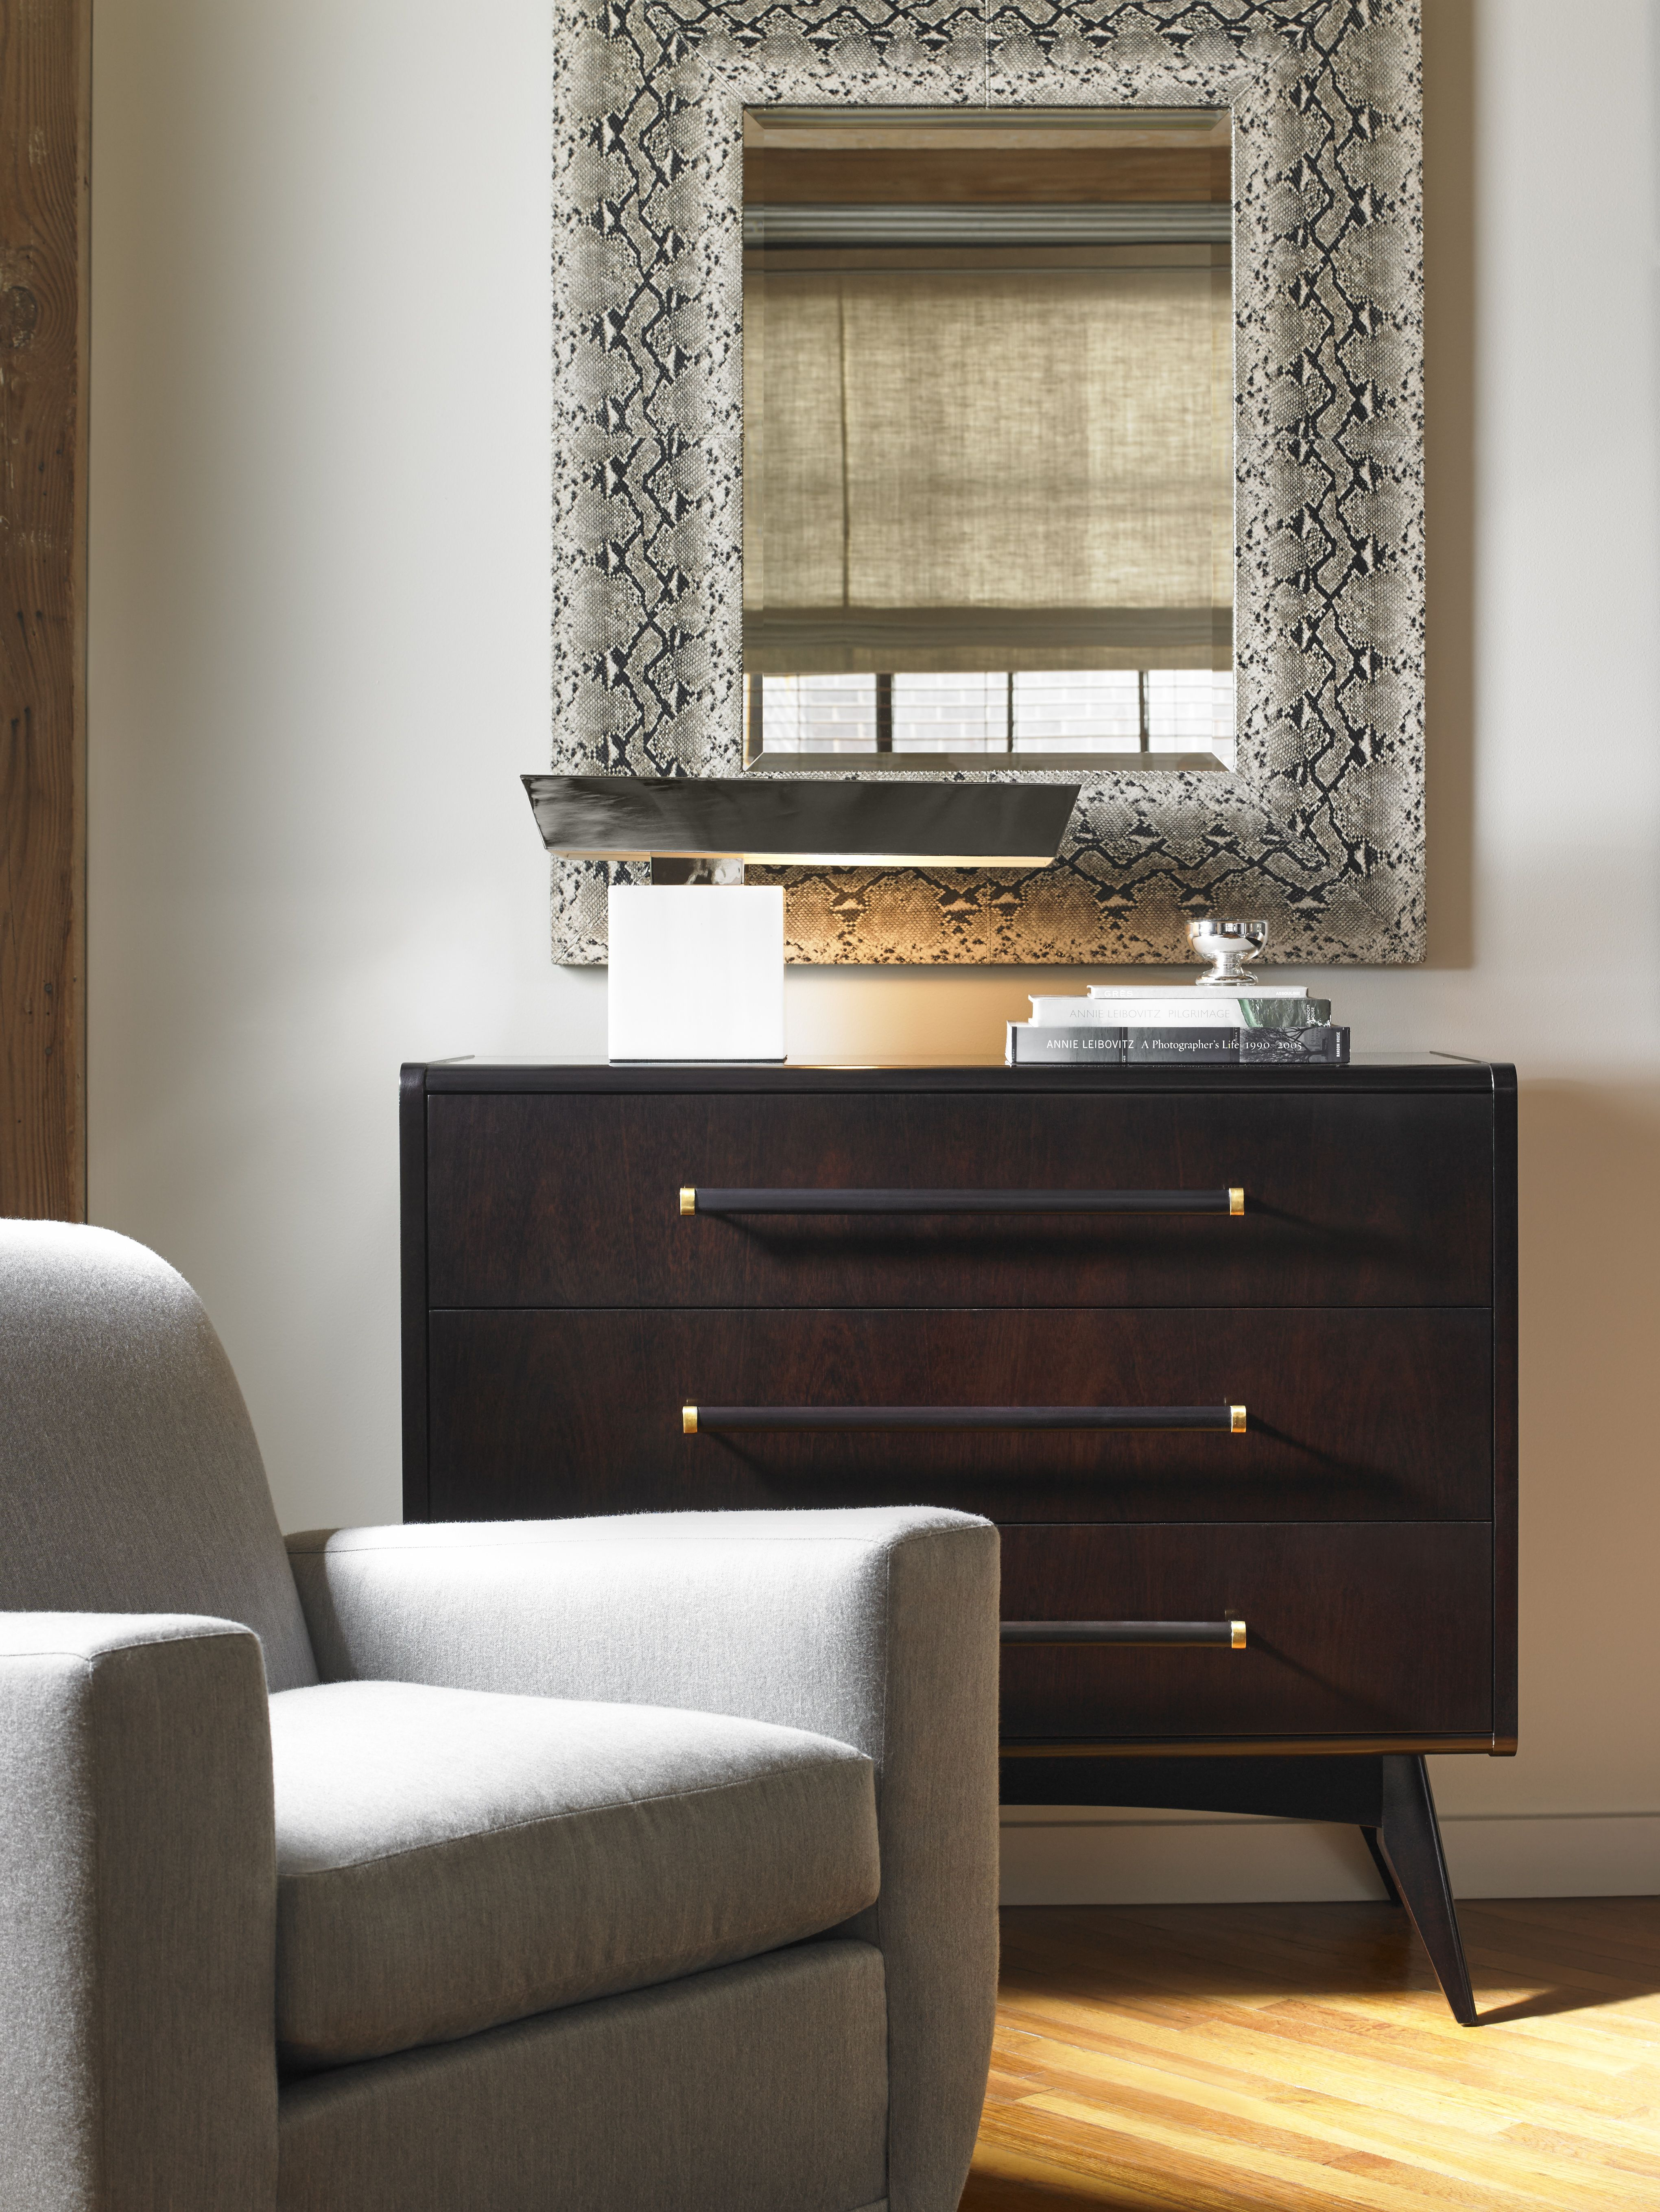 ... 172 70 Reed Chest And 128 24 Knox Chair Http://www.hickorychair.com /Furniture/All Furniture/Lighting And Accents/i510331 Megan Lamp.aspx